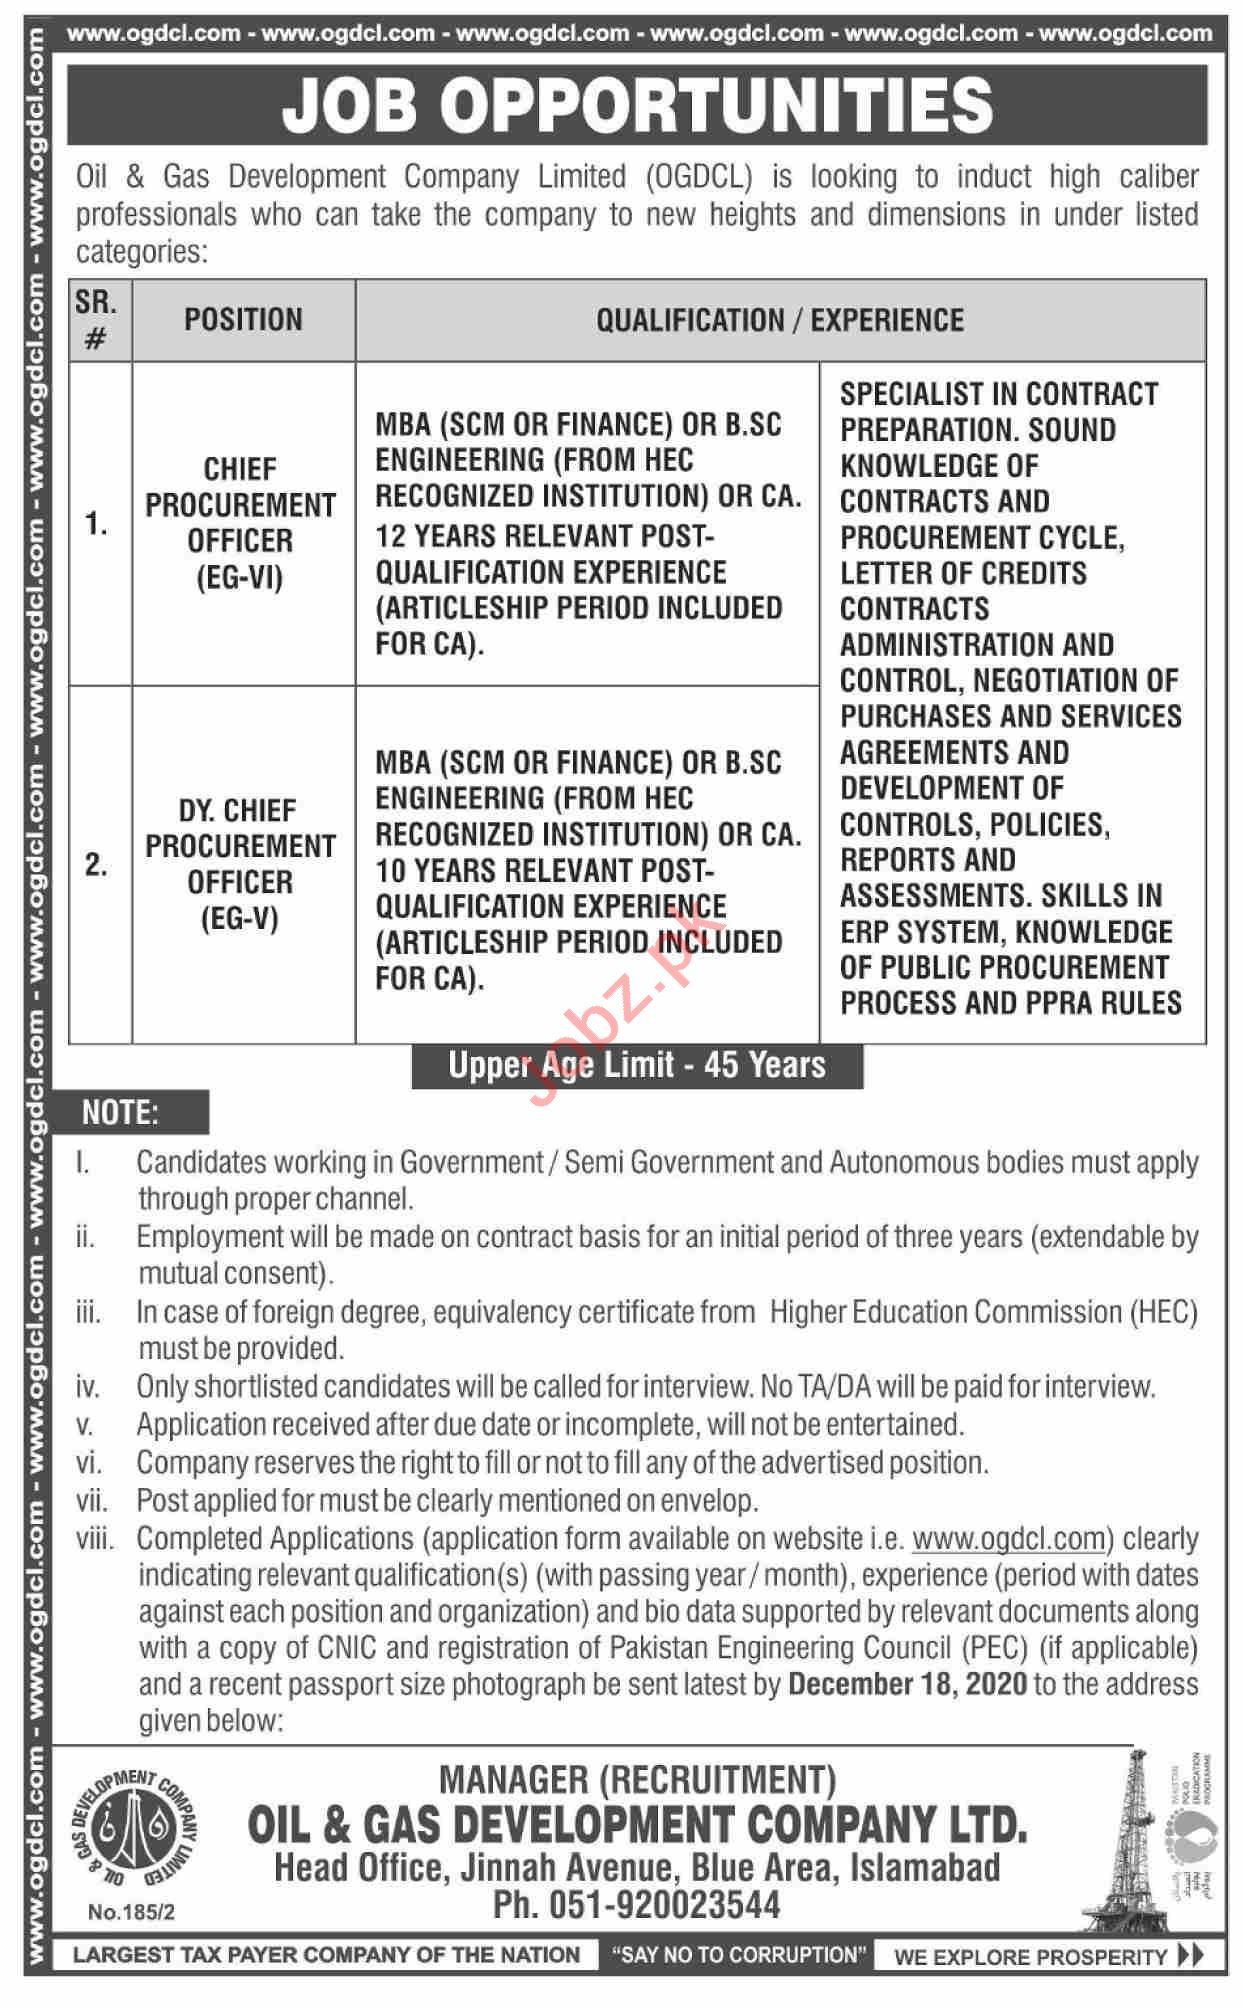 OGDCL Islamabad Jobs 2020 Chief Procurement Officer